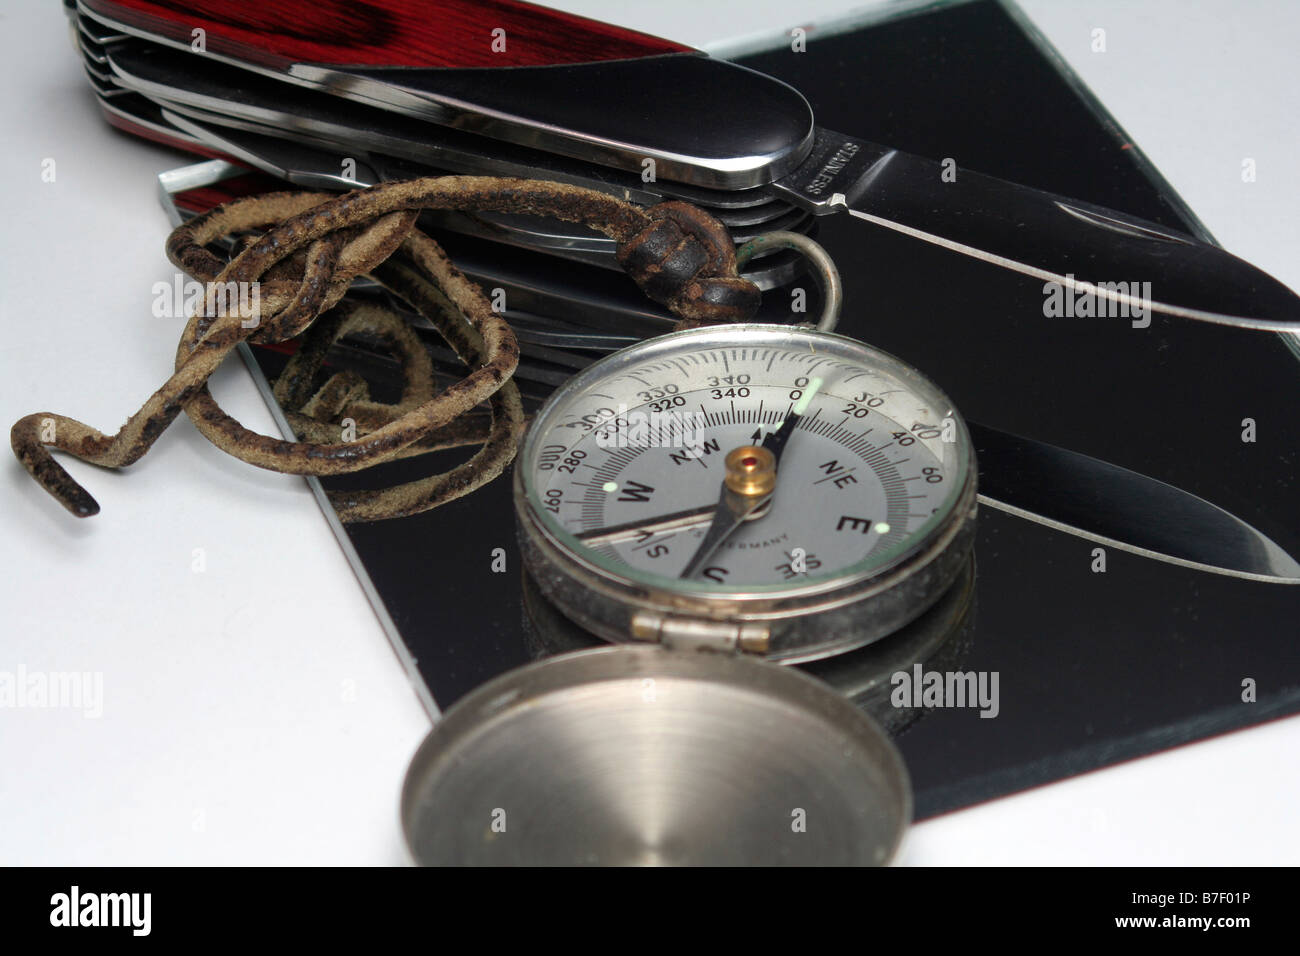 Old compass and pocket knife - Stock Image